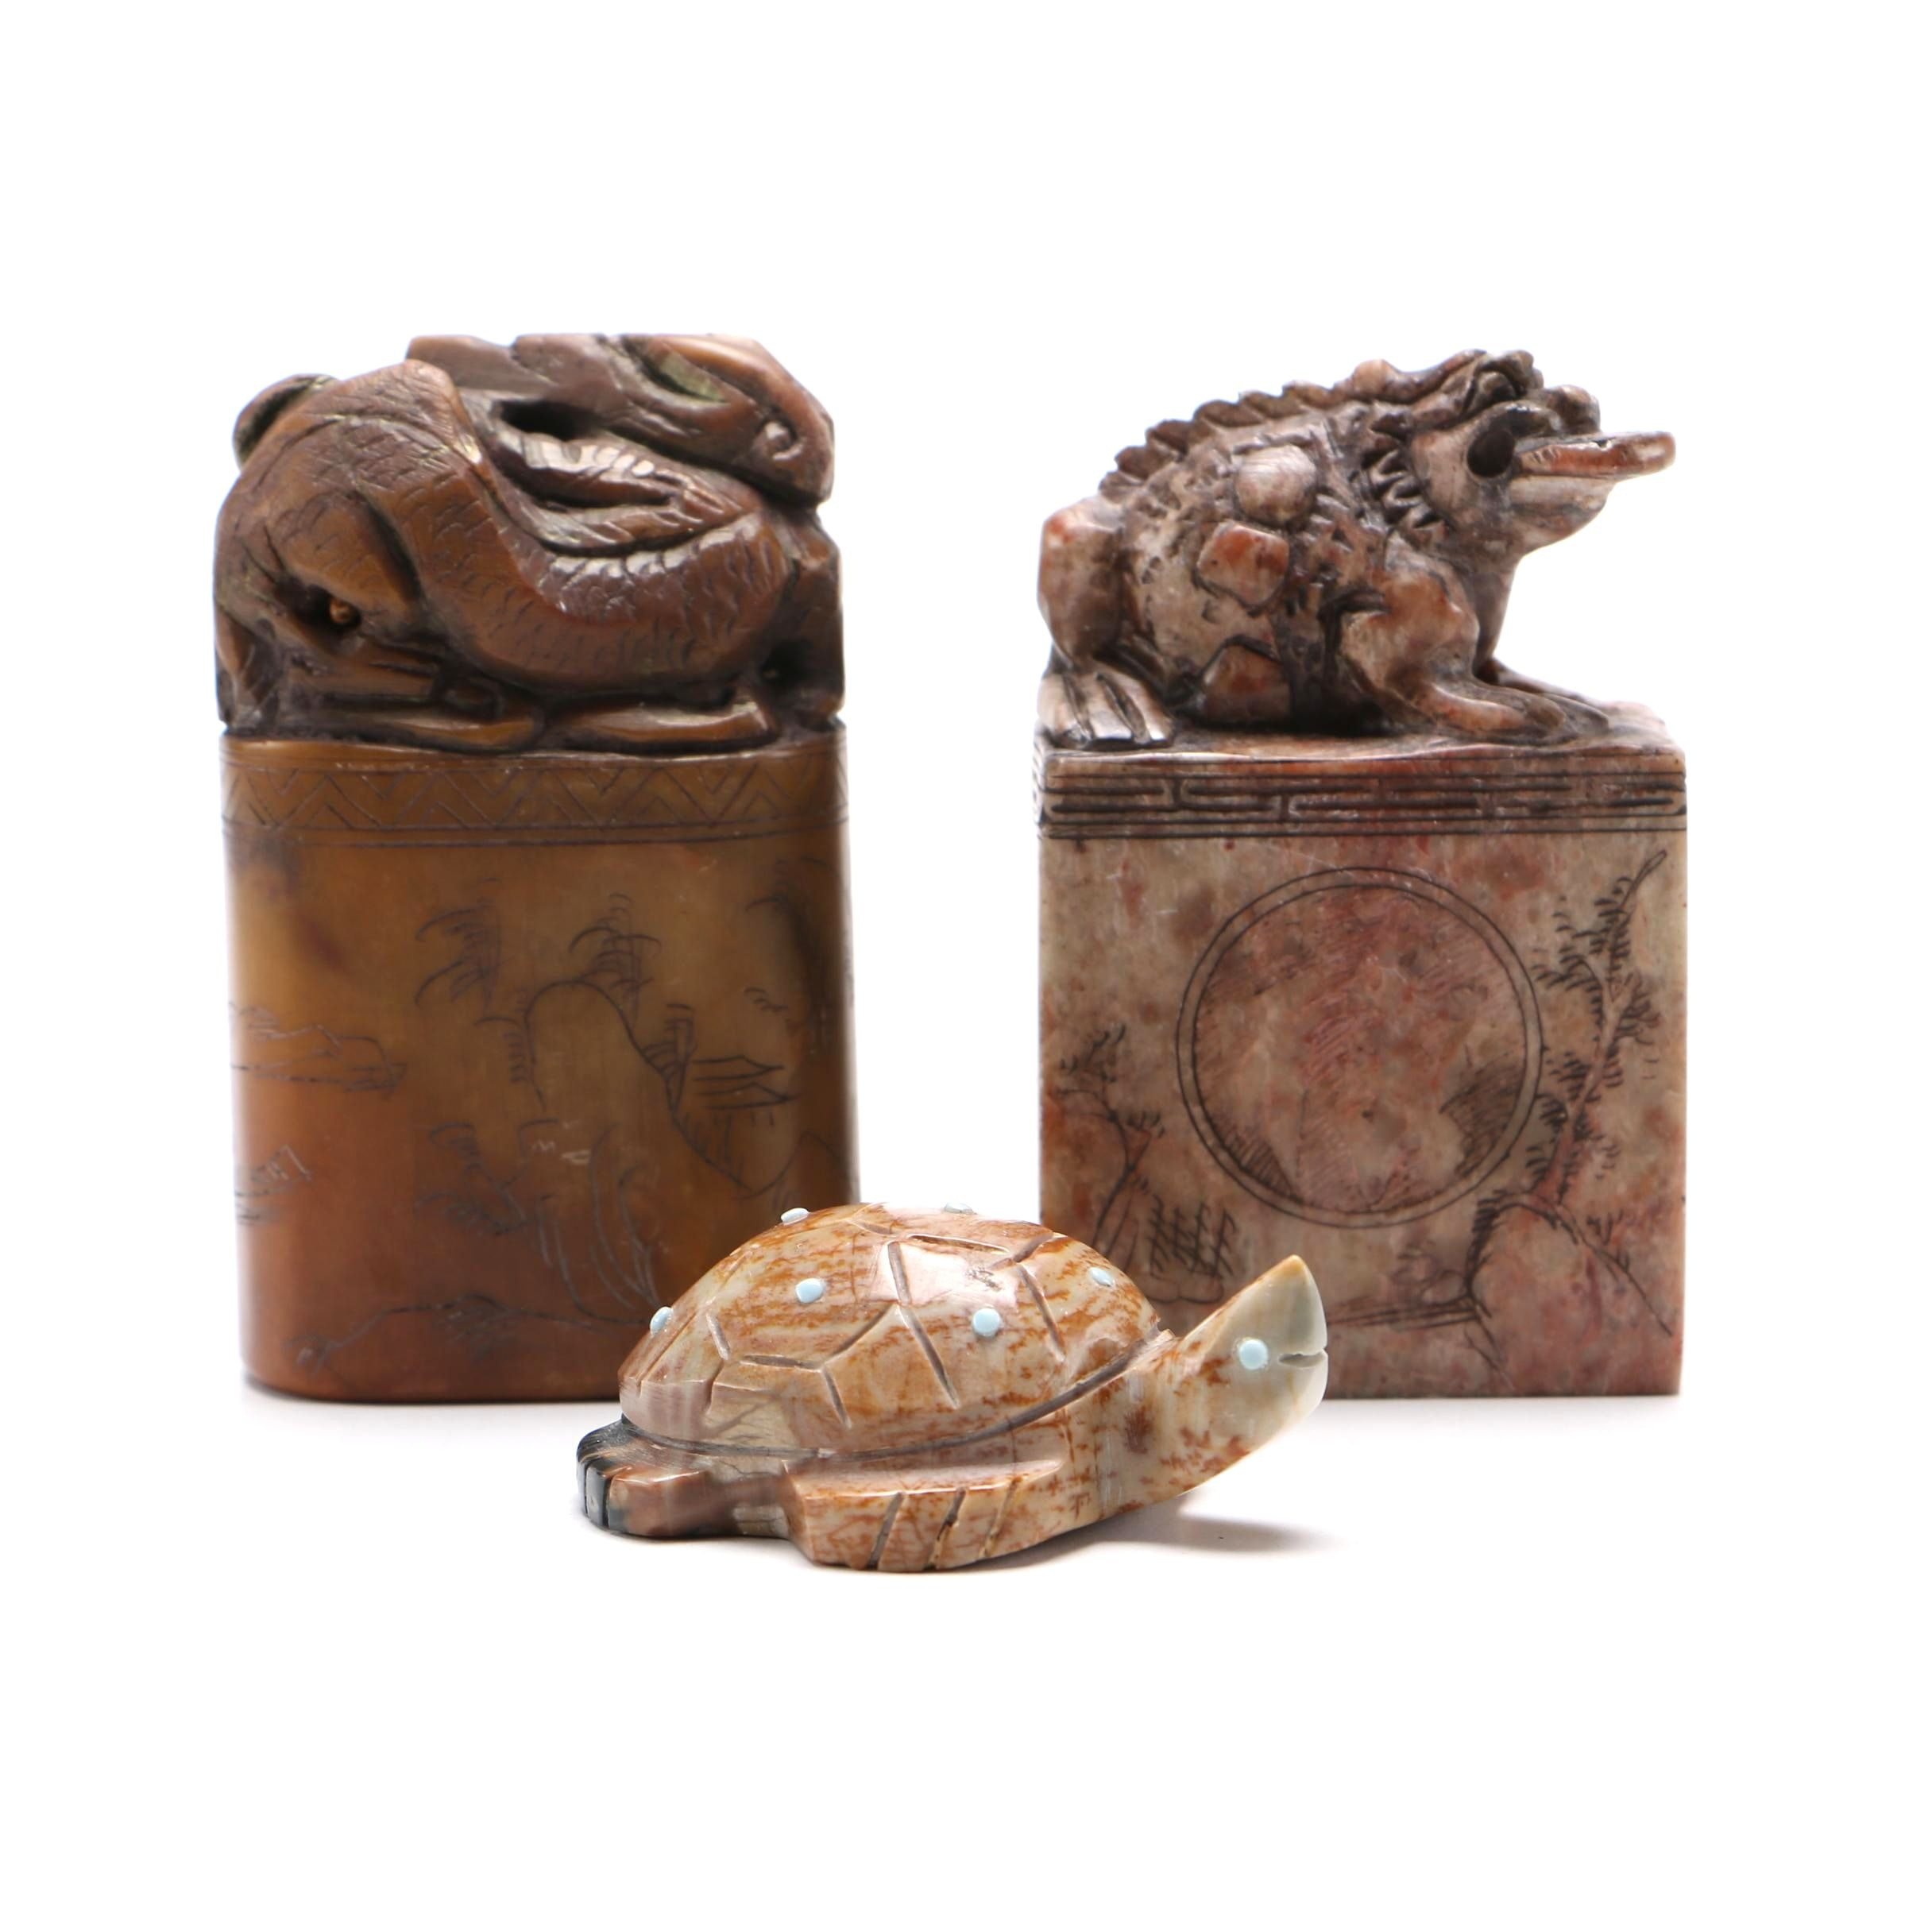 Assortment of Chinese Soapstone Seals and Figurines